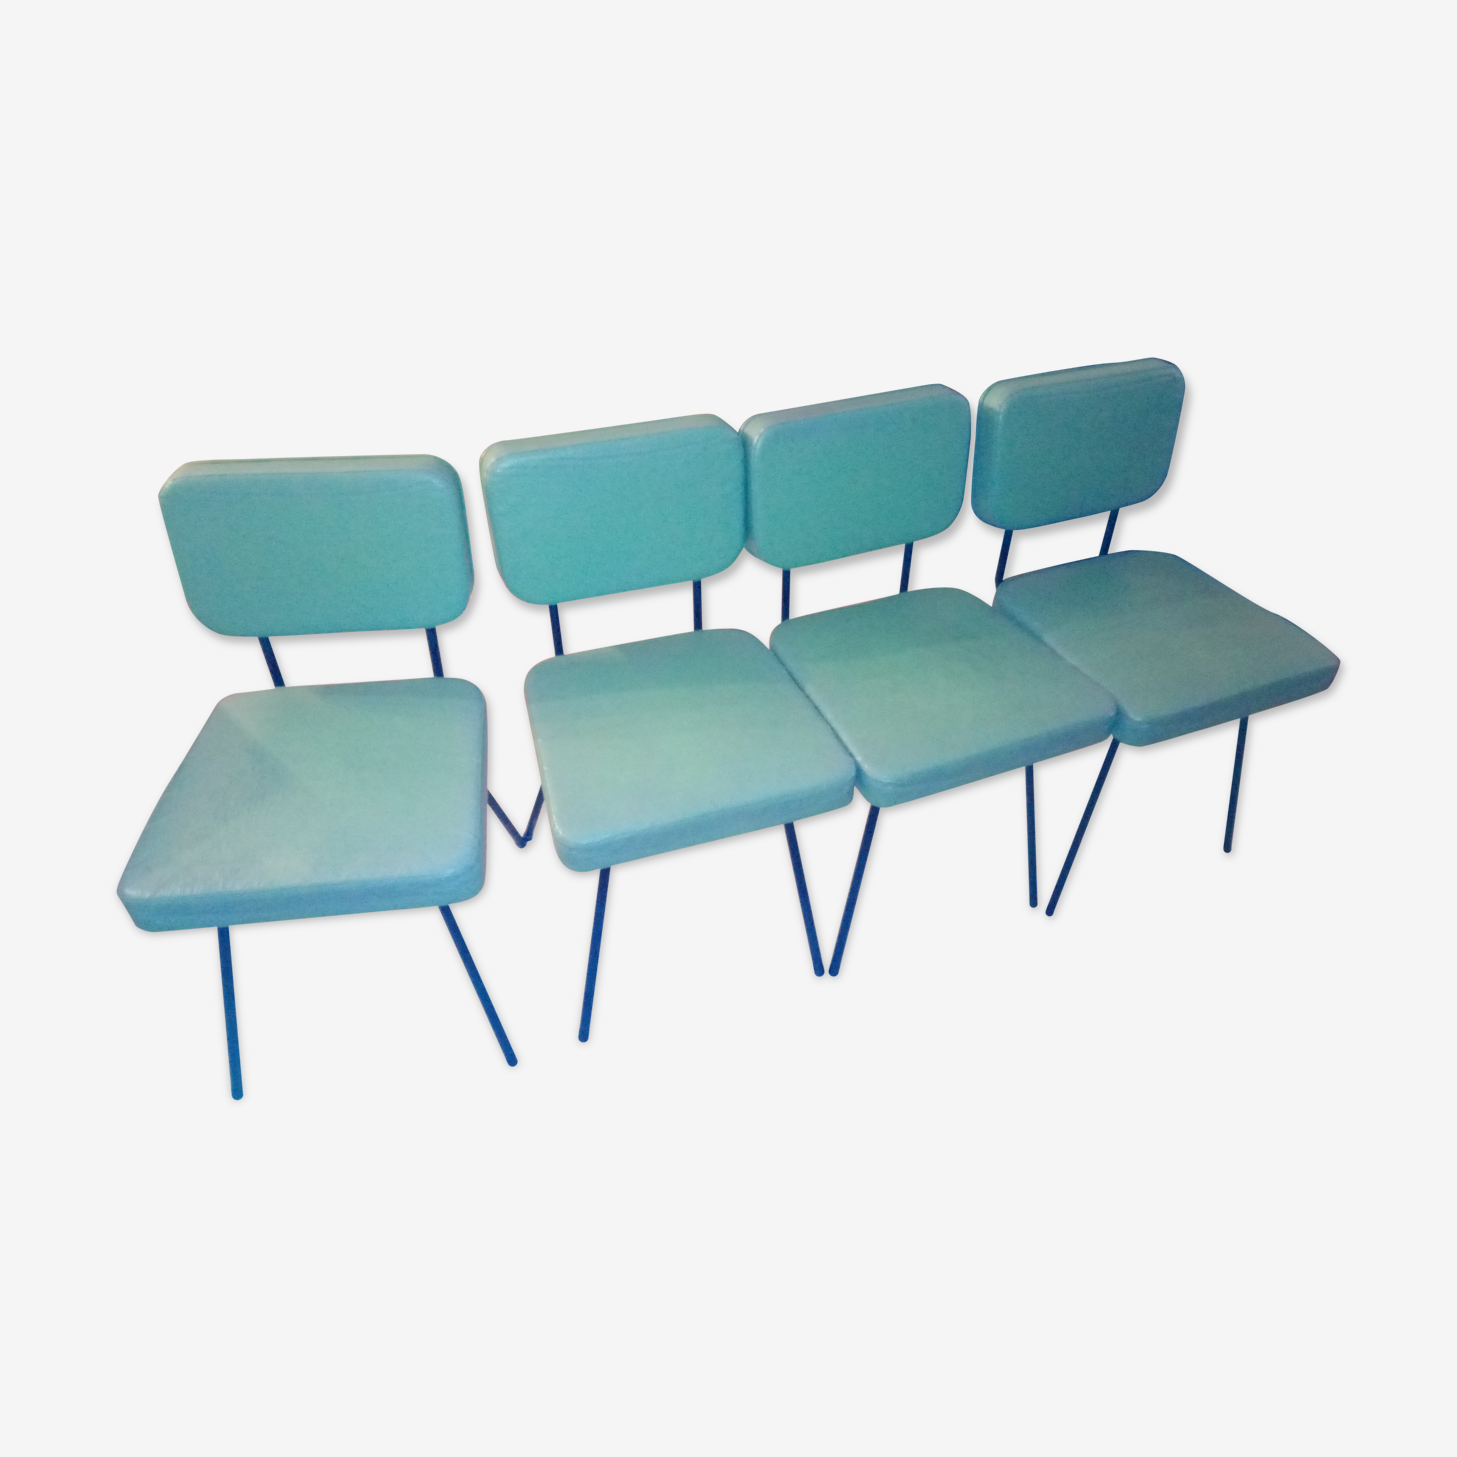 4 chaises Airborne, André Simard